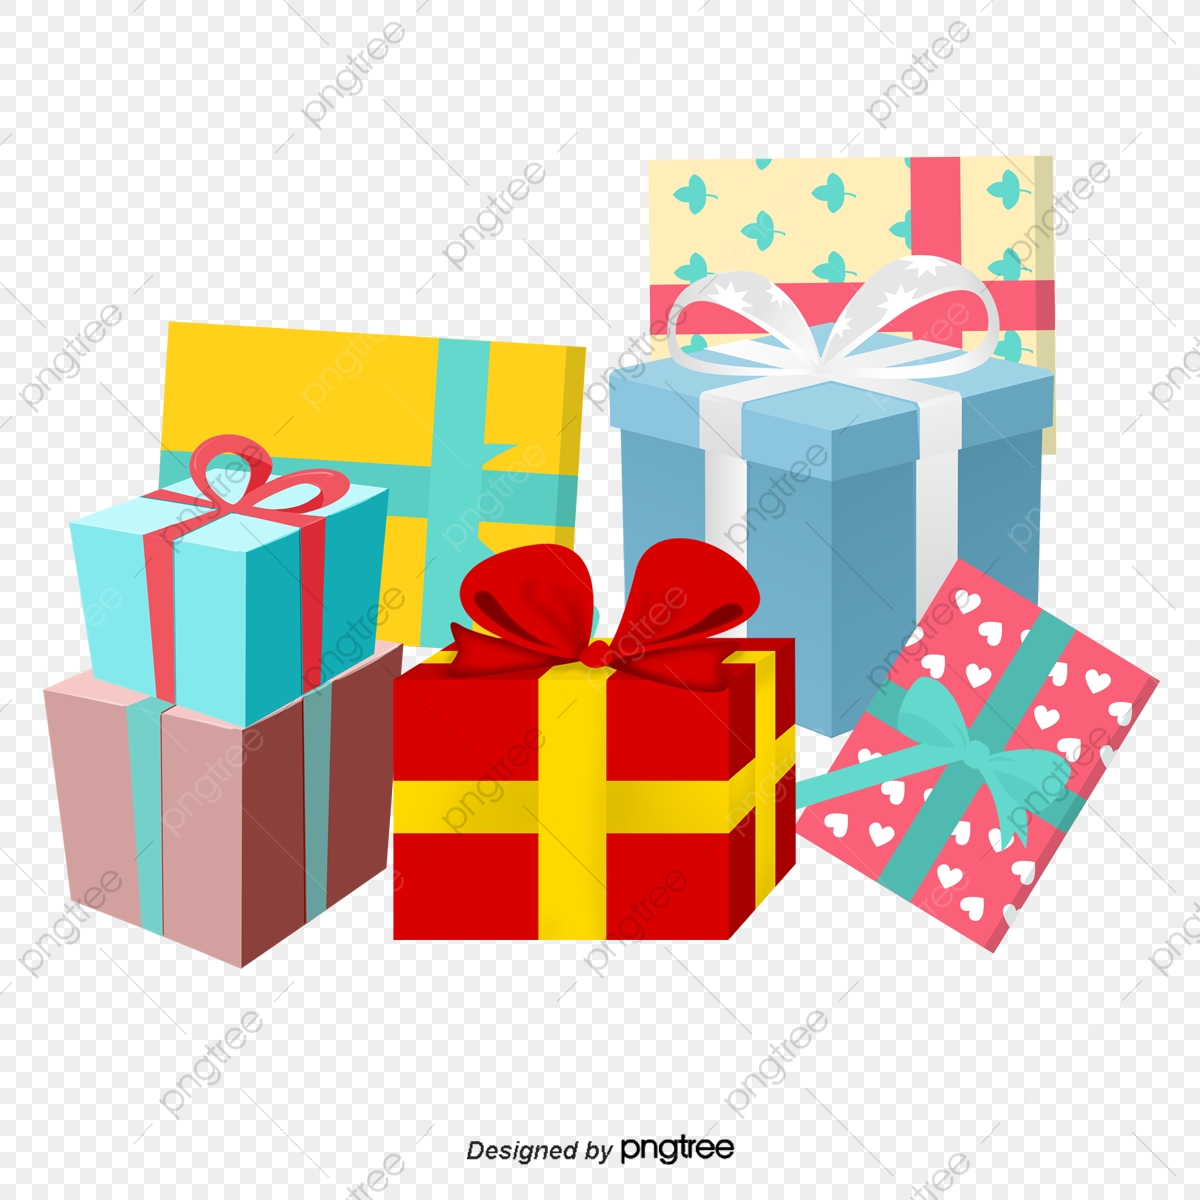 Christmas Gift Clipart.Gift Heap Gift Clipart Christmas Gifts Gift Boxes Png